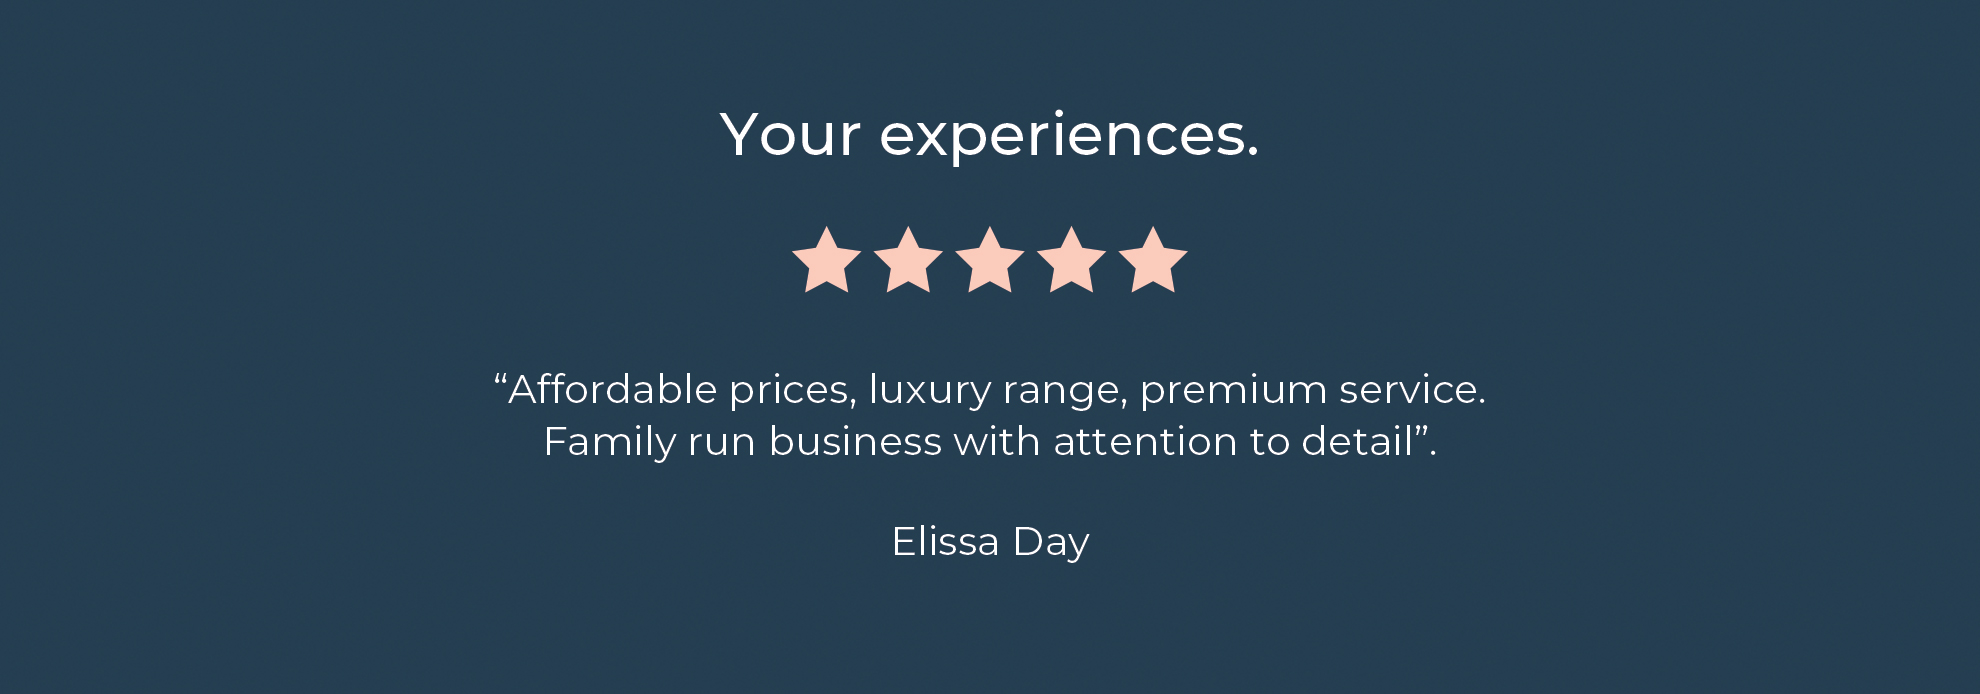 Your-experiences-customer-review-2